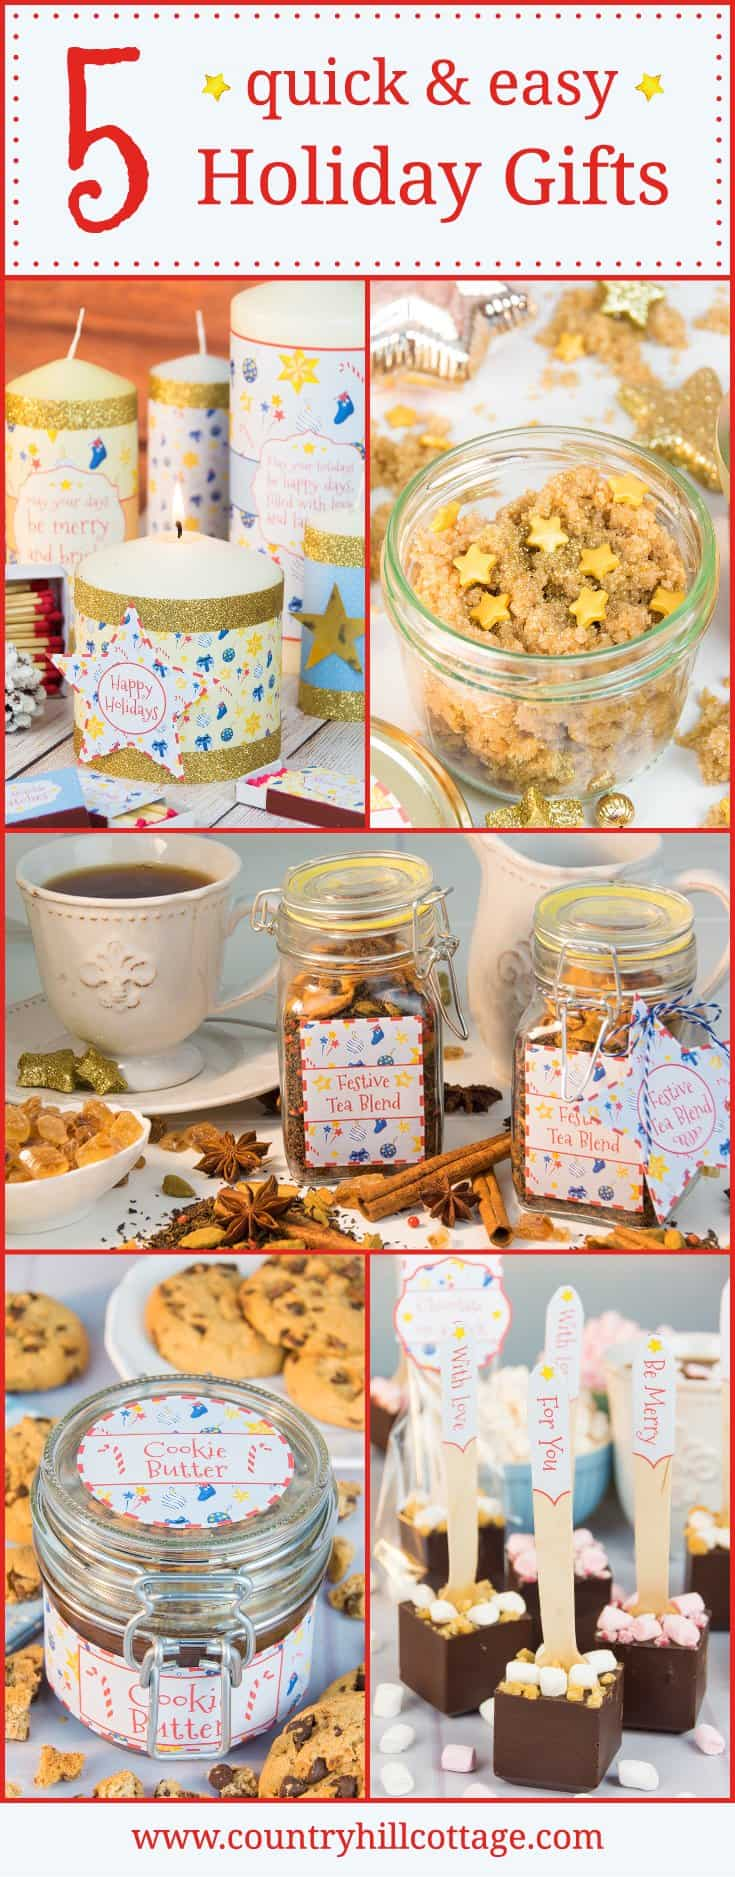 5 Quick Holiday Gift Giving Ideas: Gift candles, DIY body scrub, homemade cookie butter, hot chocolate on a stick and a festive tea blend | countryhillcottage.com